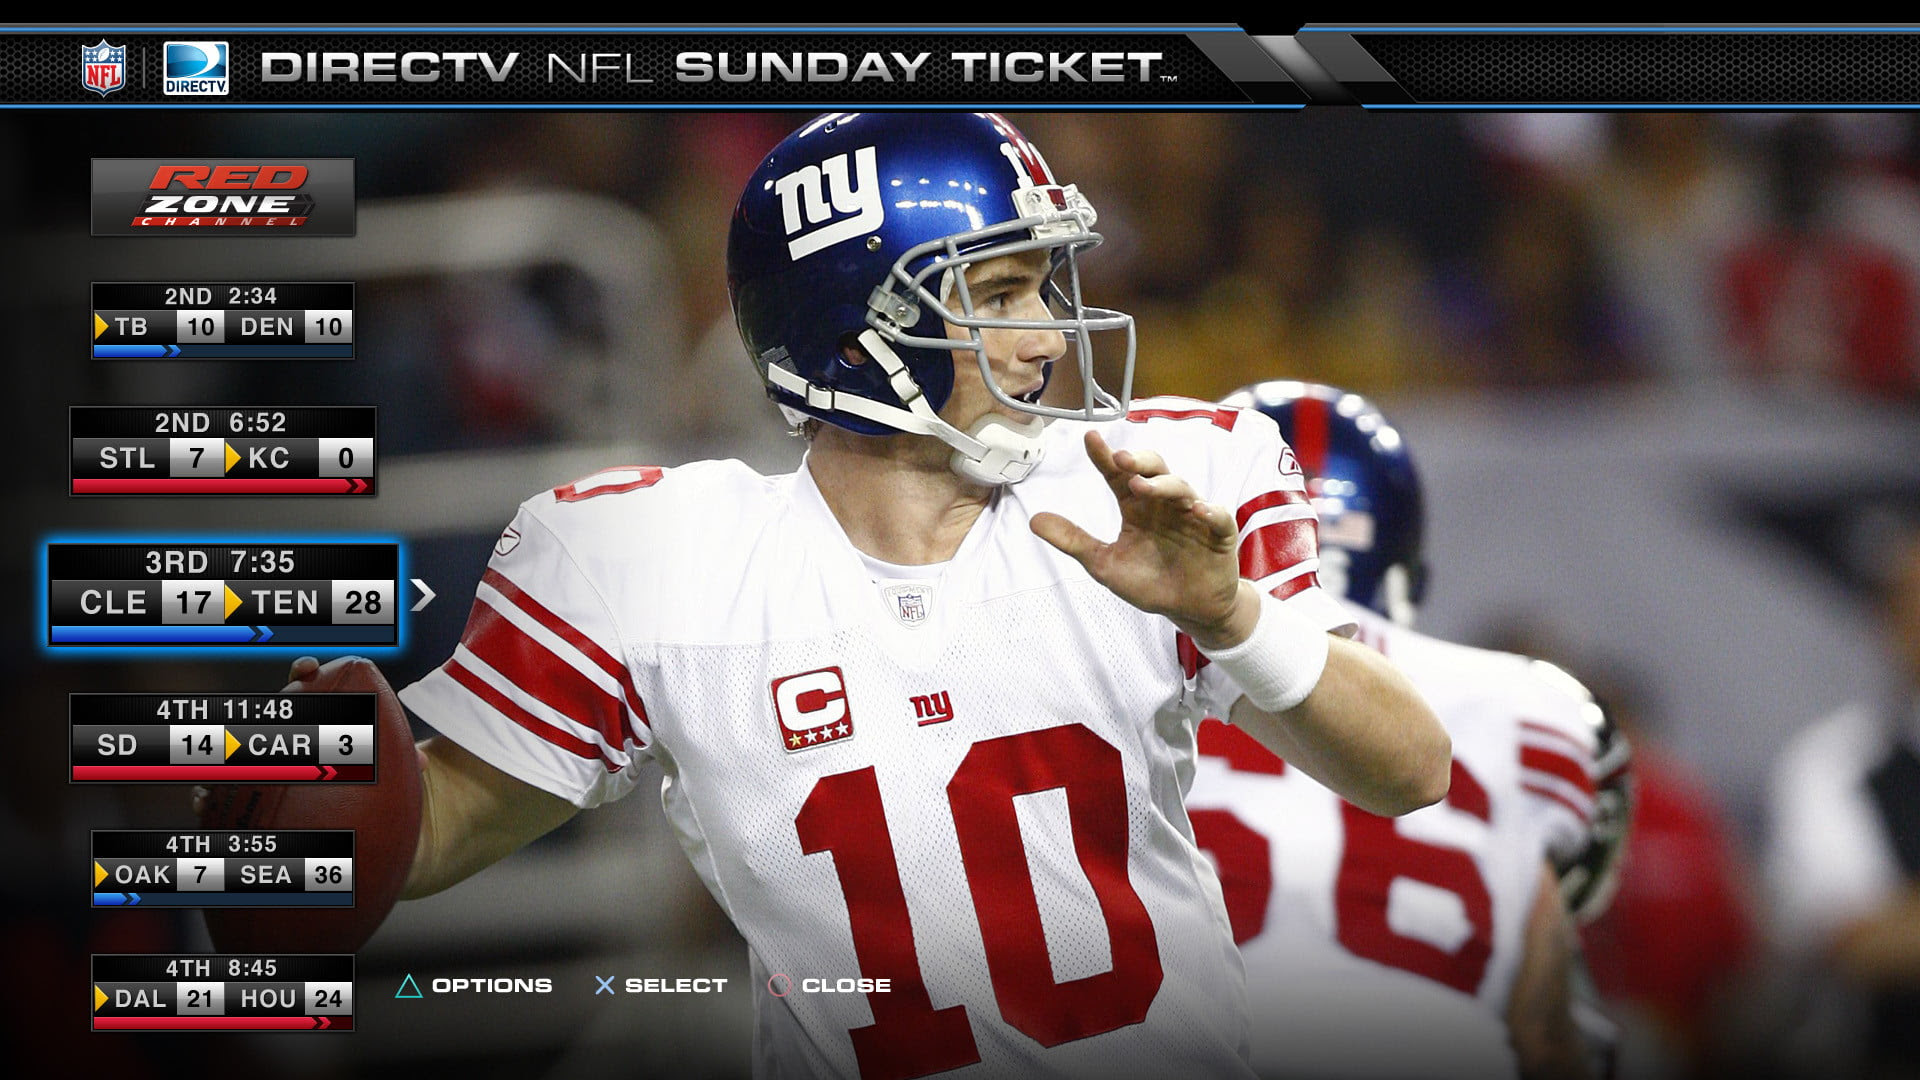 Sony PlayStation 3 getting DirecTVs NFL Sunday Ticket, no dish necessary  Digital Trends